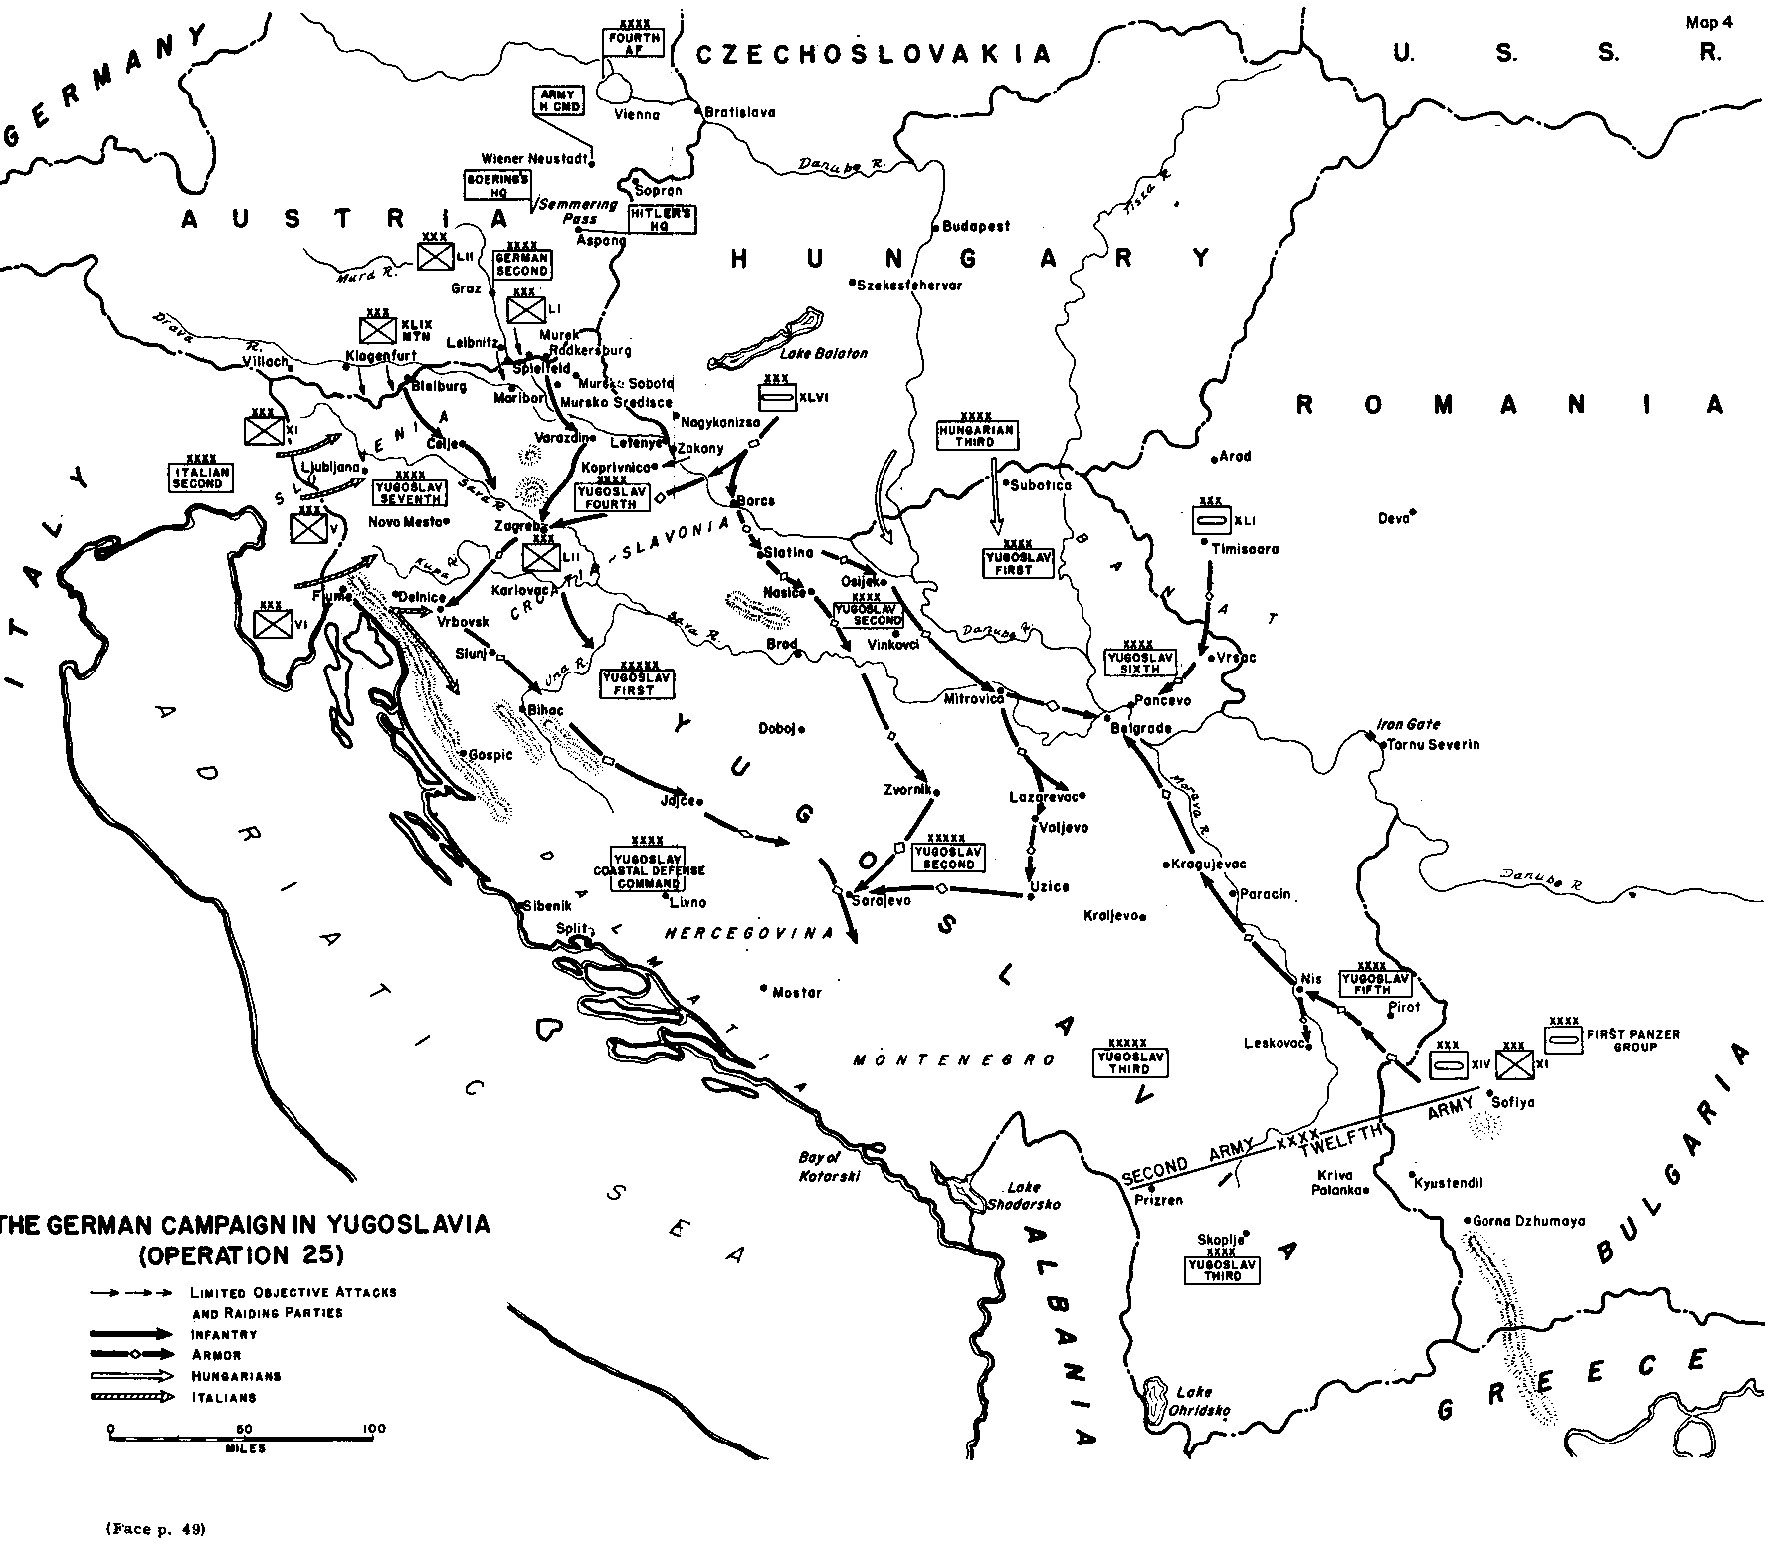 THE GERMAN CAMPAIGN IN THE BALKANS (SPRING 1941): PART II on